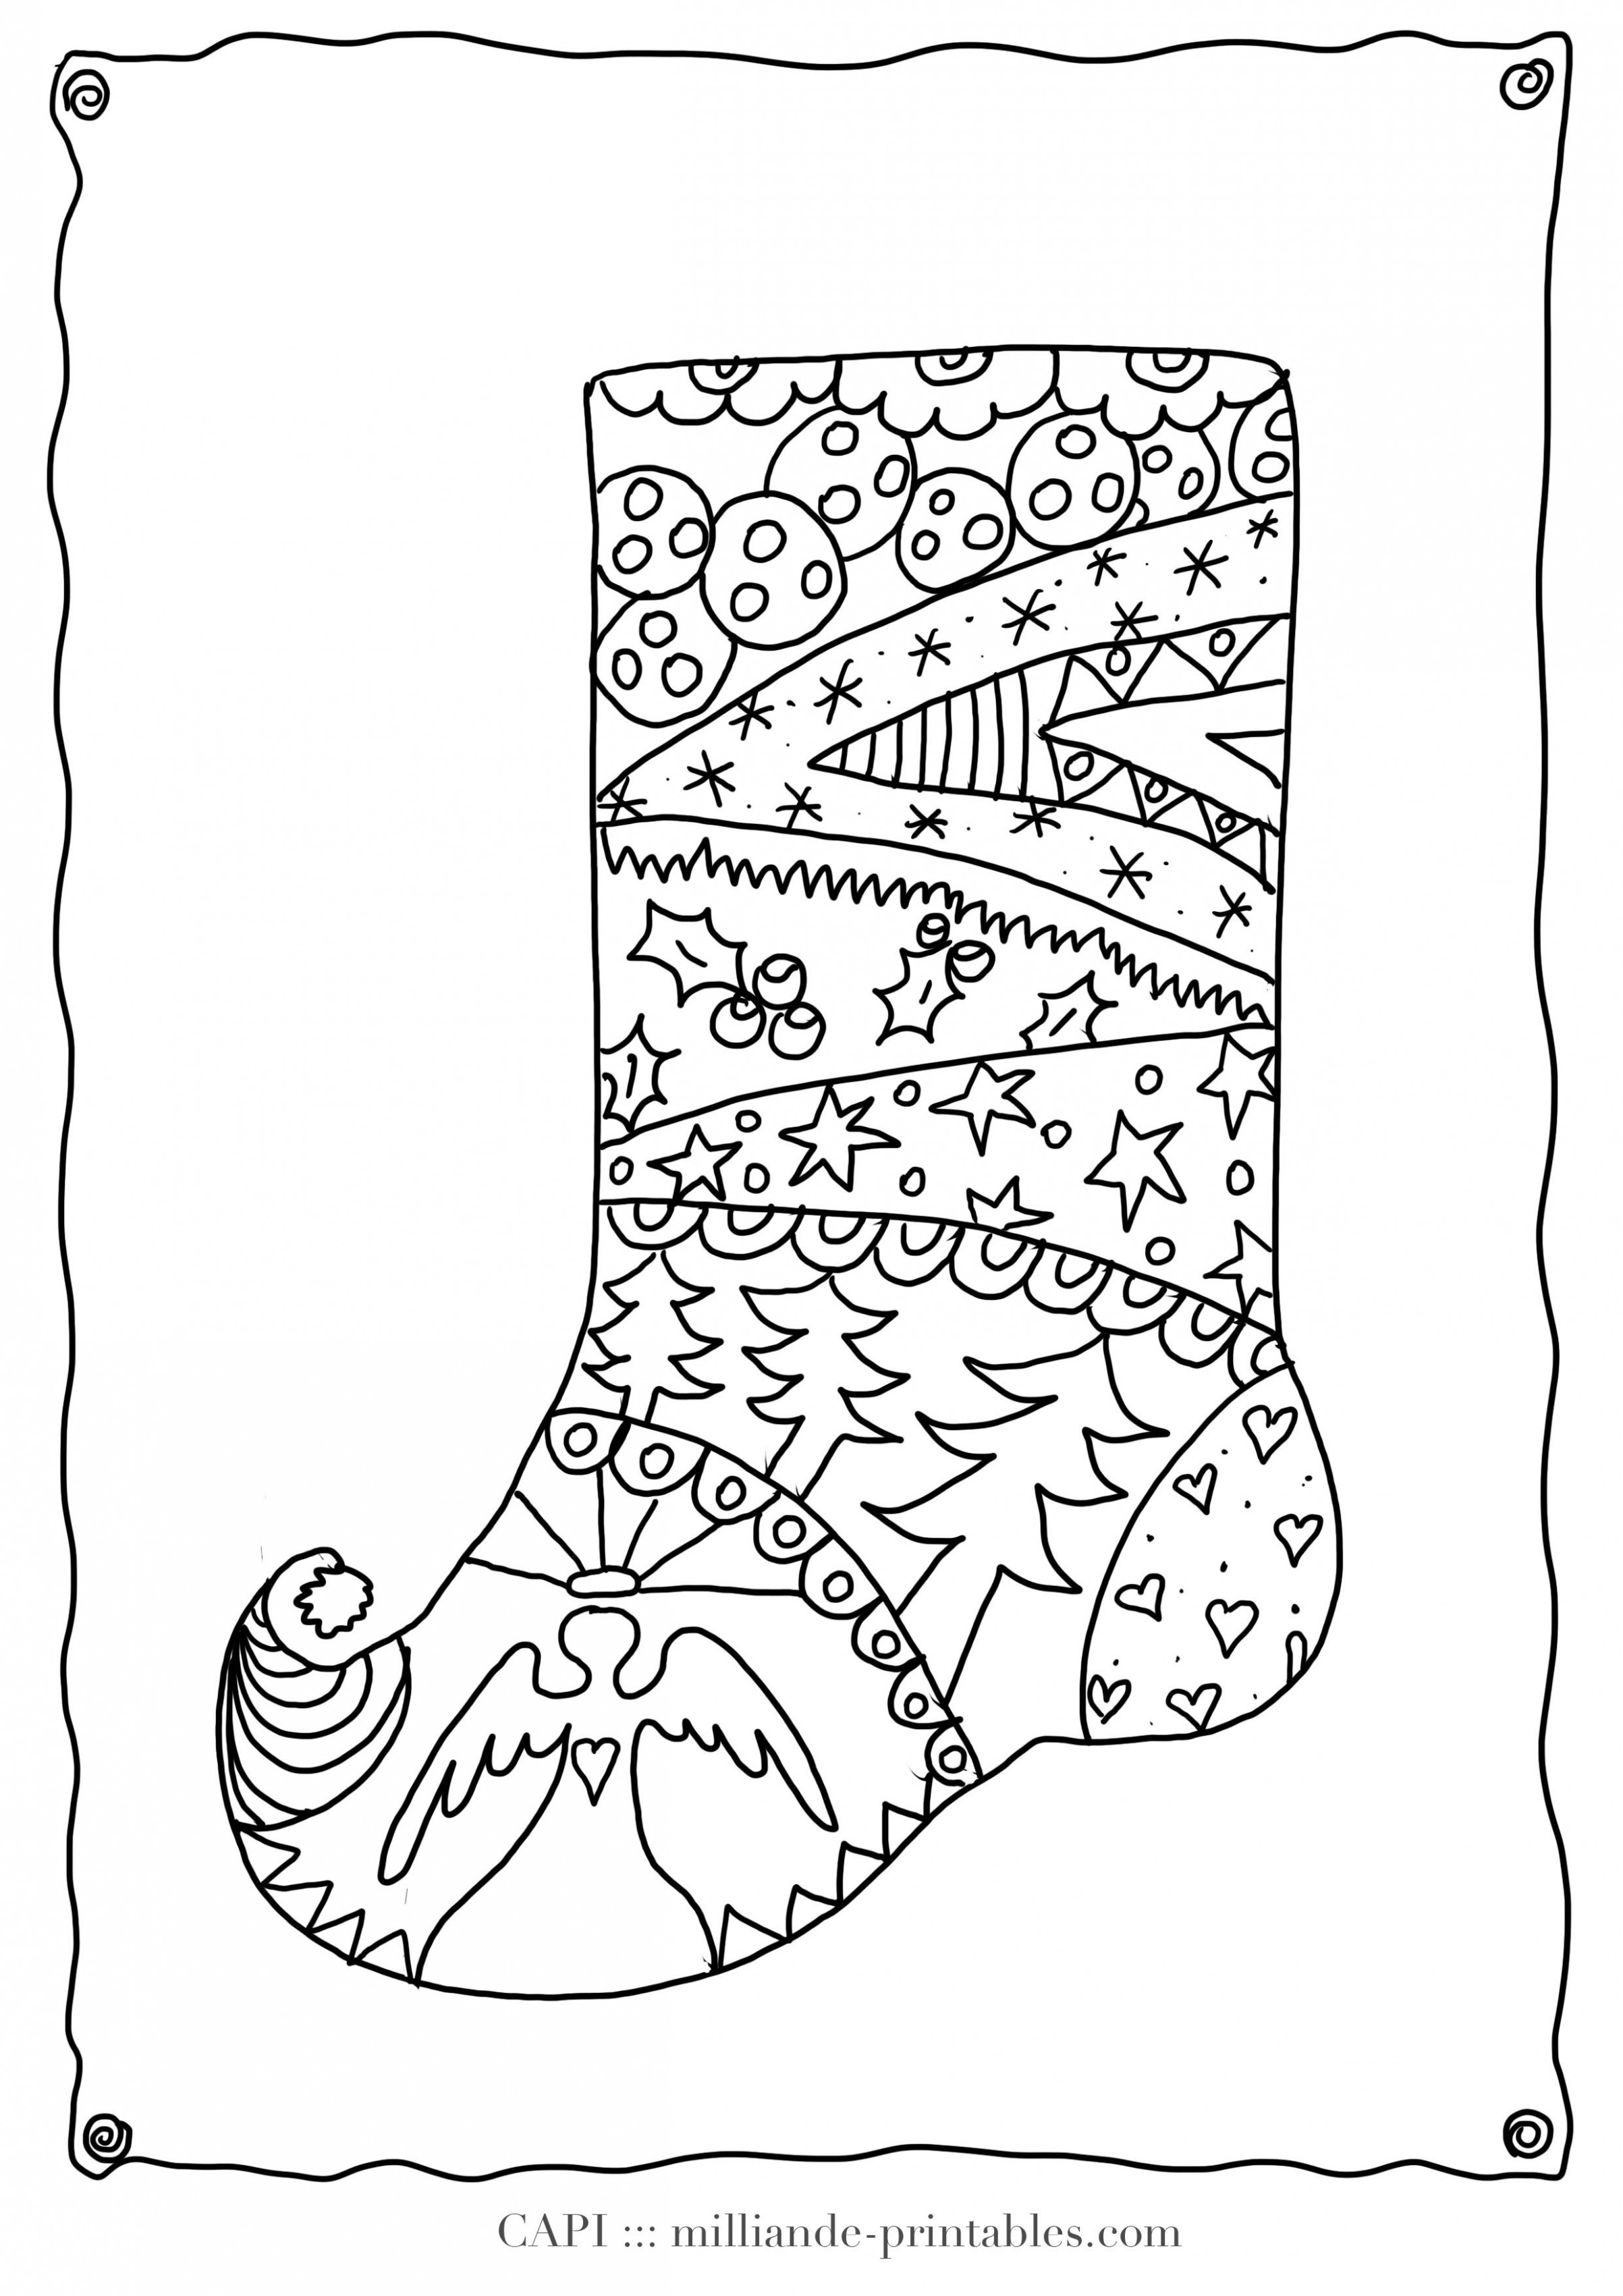 Christmas Stocking to Color Free printable Christmas Coloring Pages ...